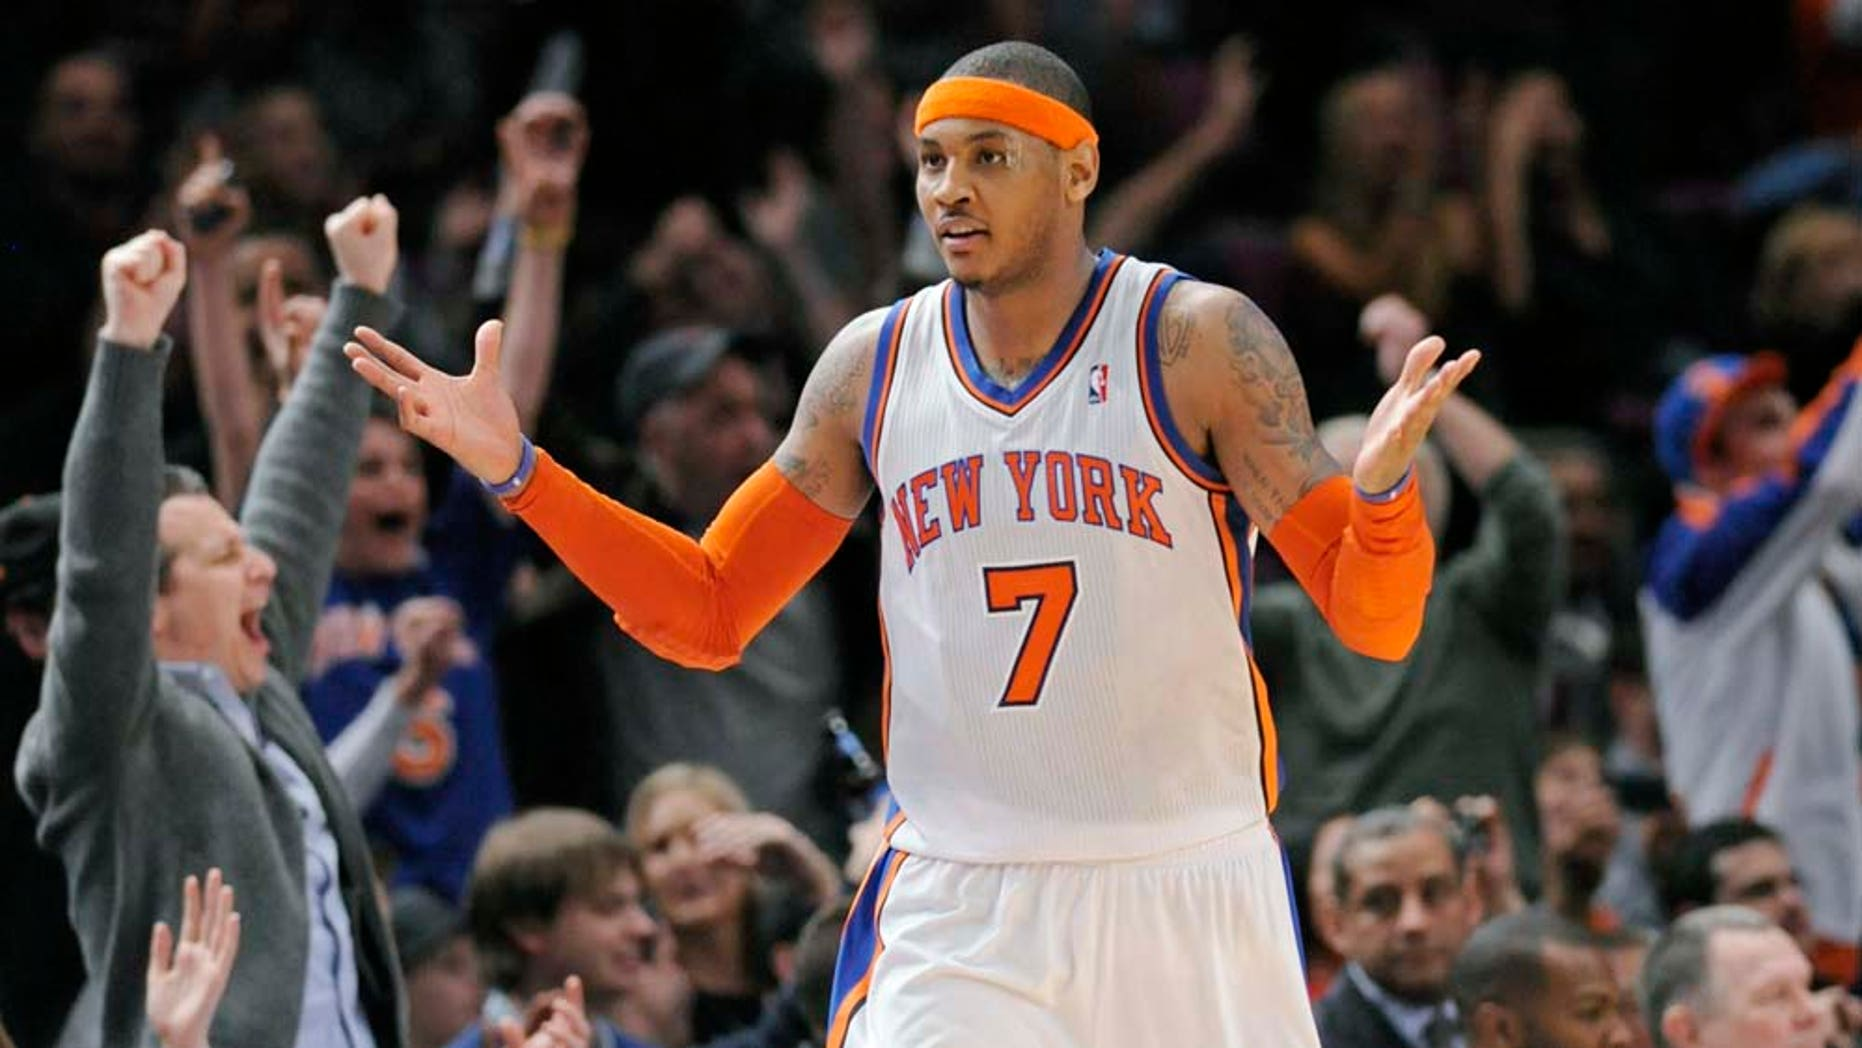 New York Knicks' Carmelo Anthony reacts as the fans cheer after he hit a shot during the fourth quarter of an NBA basketball game against the Orlando Magic Monday, March 28, 2011 at Madison Square Garden in New York.  Anthony led all scorers with 39 points as the Knicks won 113-106 in overtime. (AP Photo/Bill Kostroun)